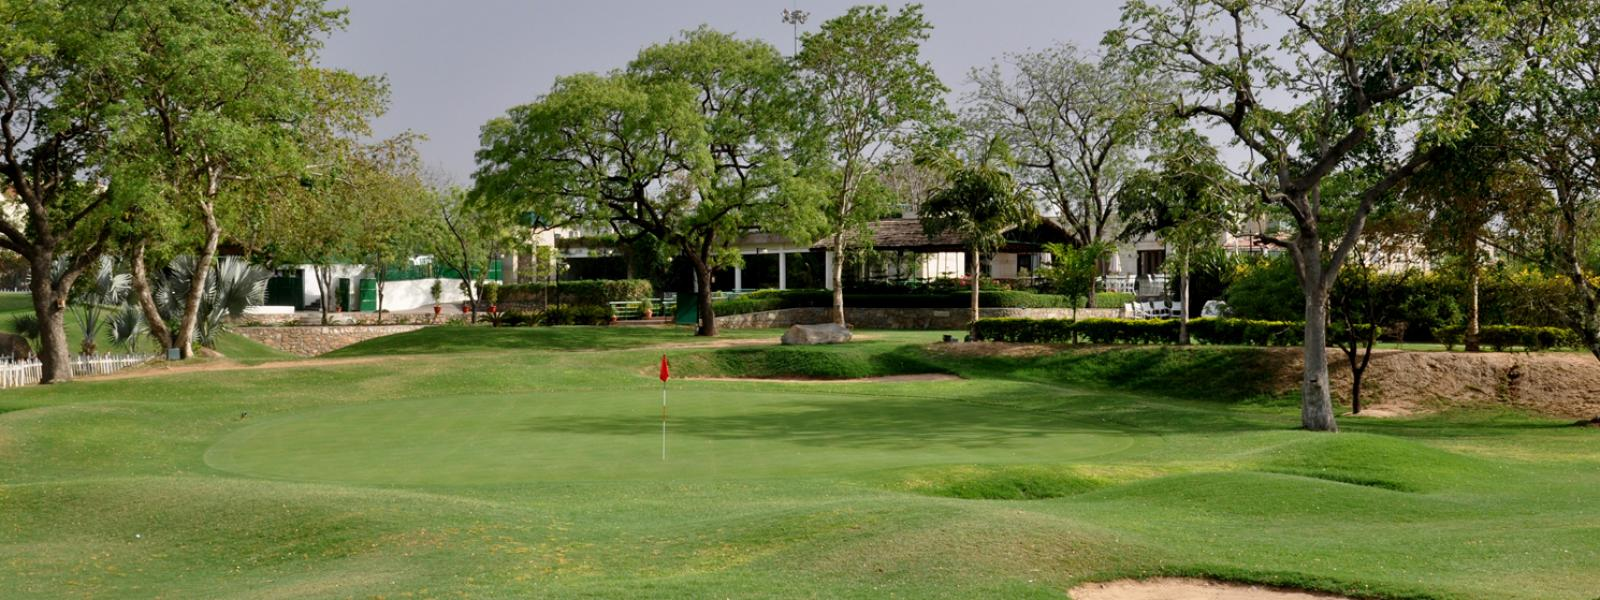 Golf Booking System, Book Tee Time Online, Handicap